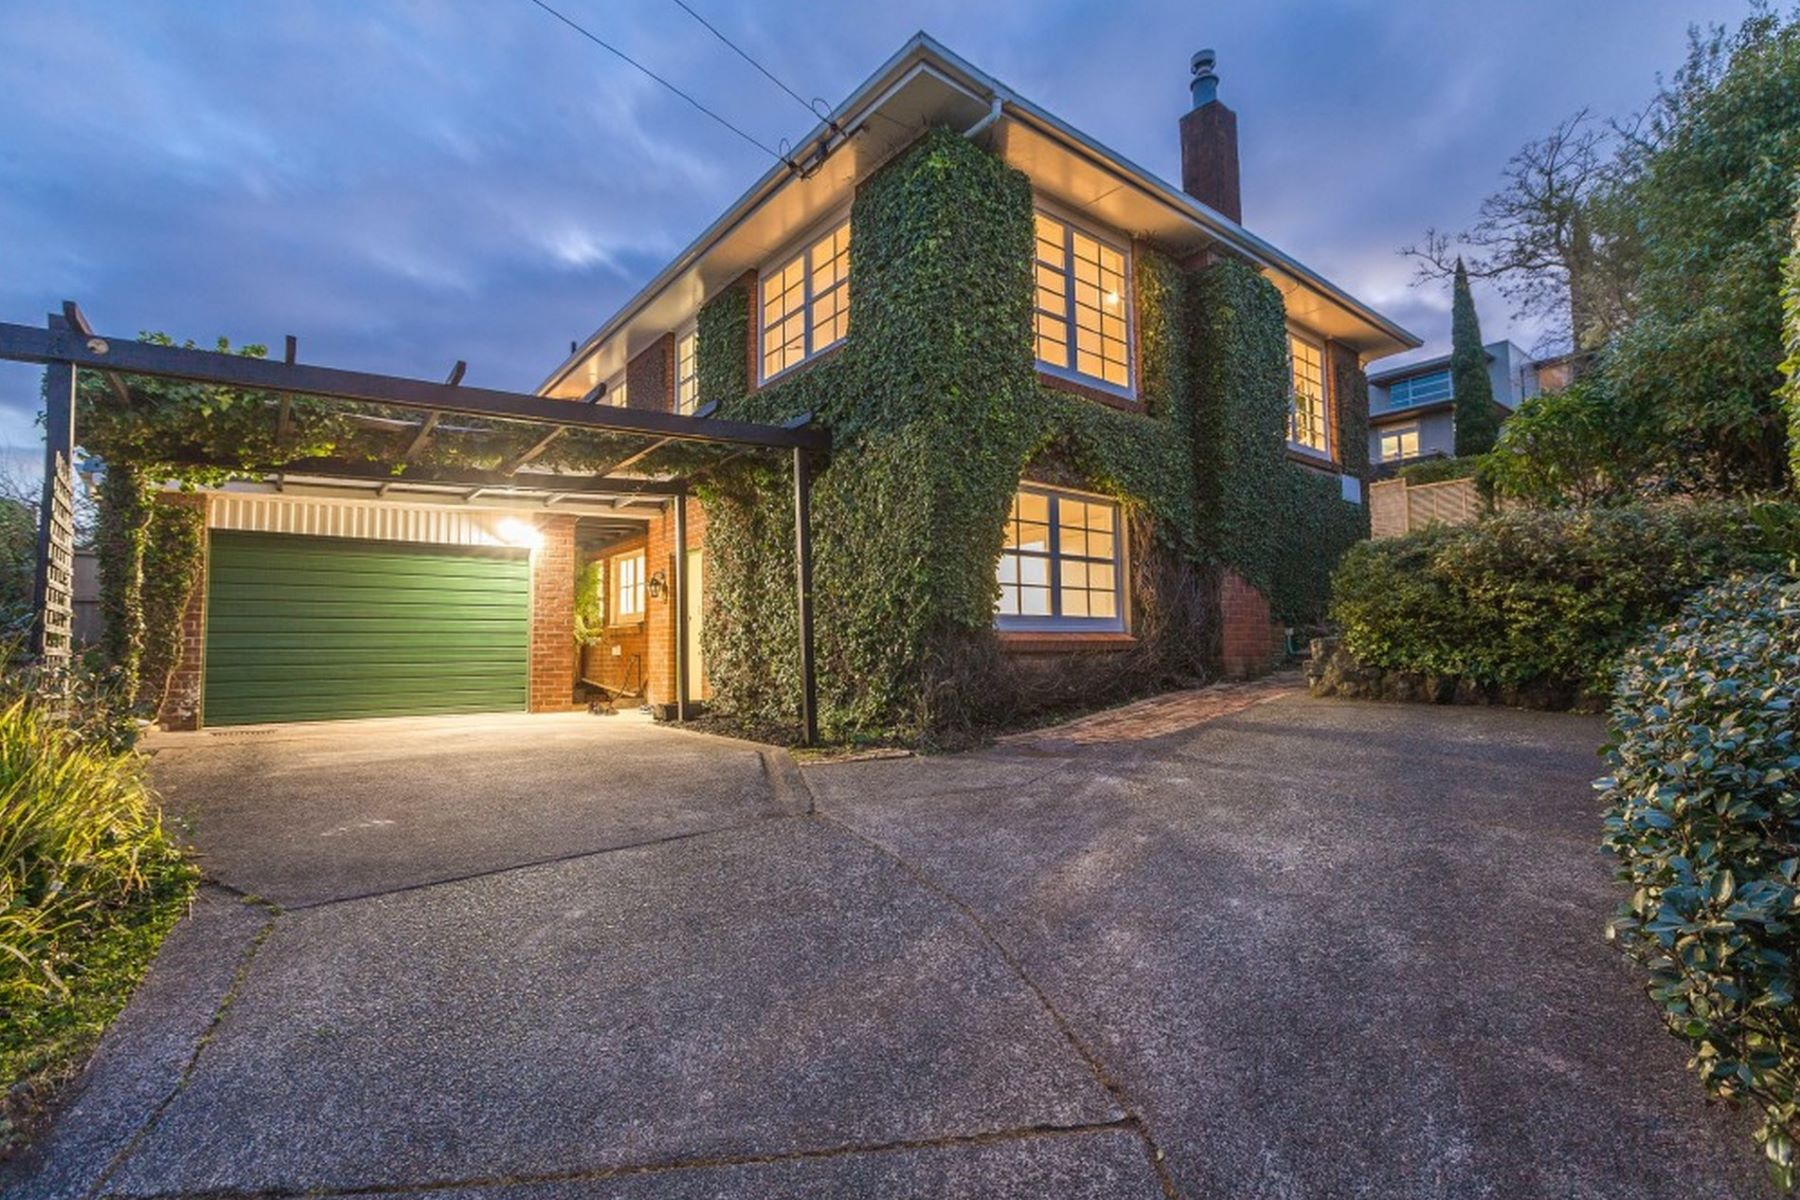 Single Family Home for Sale at 80 Lucerne Road, Remuera 80 Lucerne Road Remuera Auckland, Auckland, 1050 New Zealand